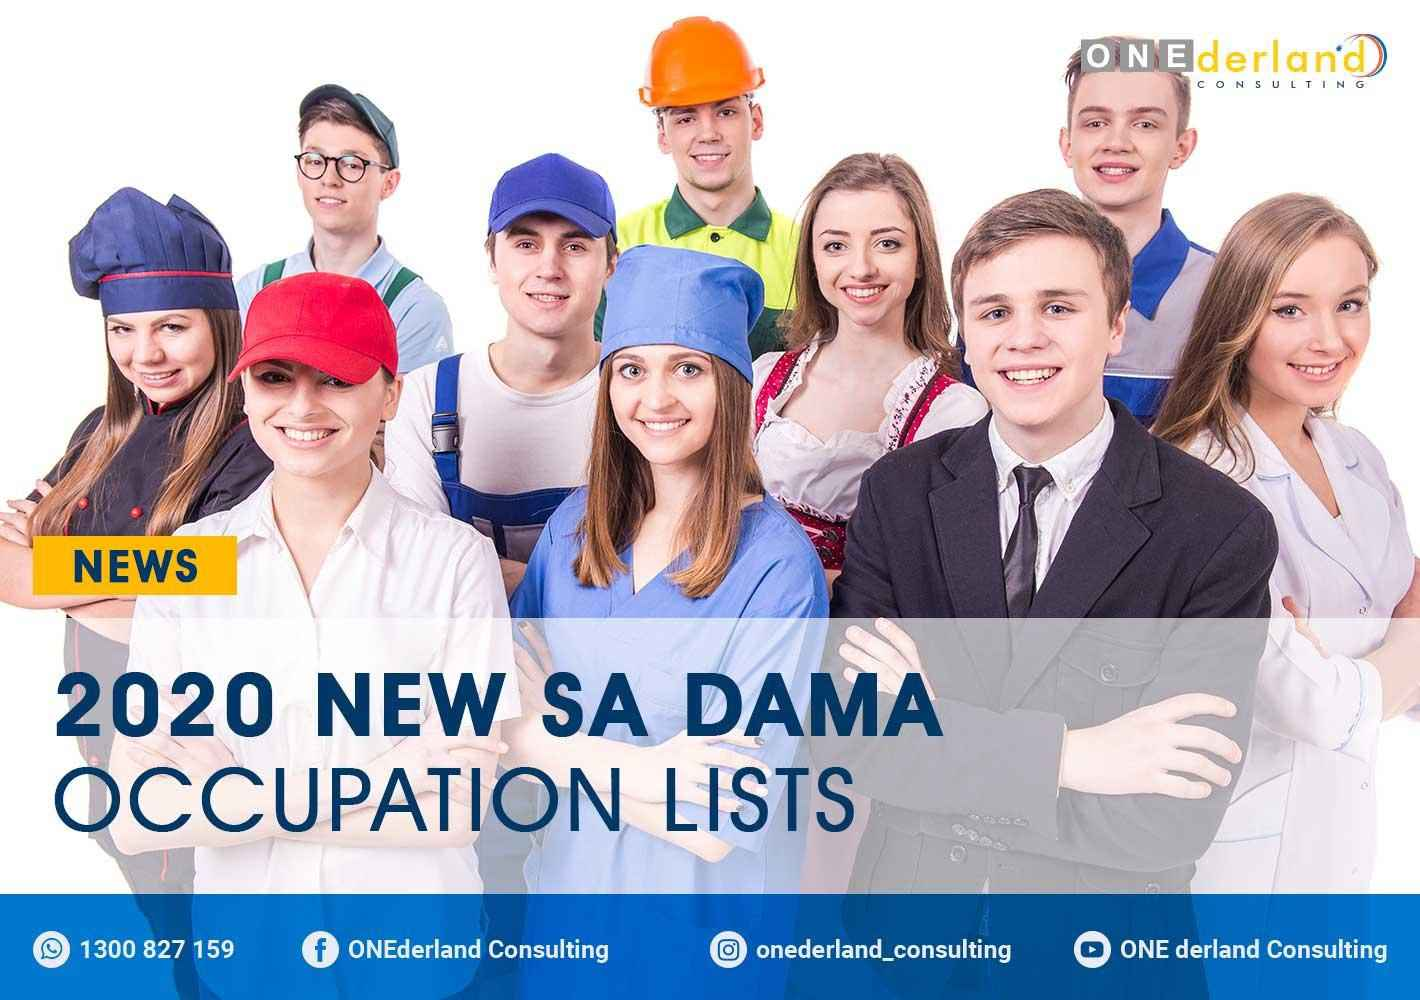 2020 New SA DAMA Occupation Lists